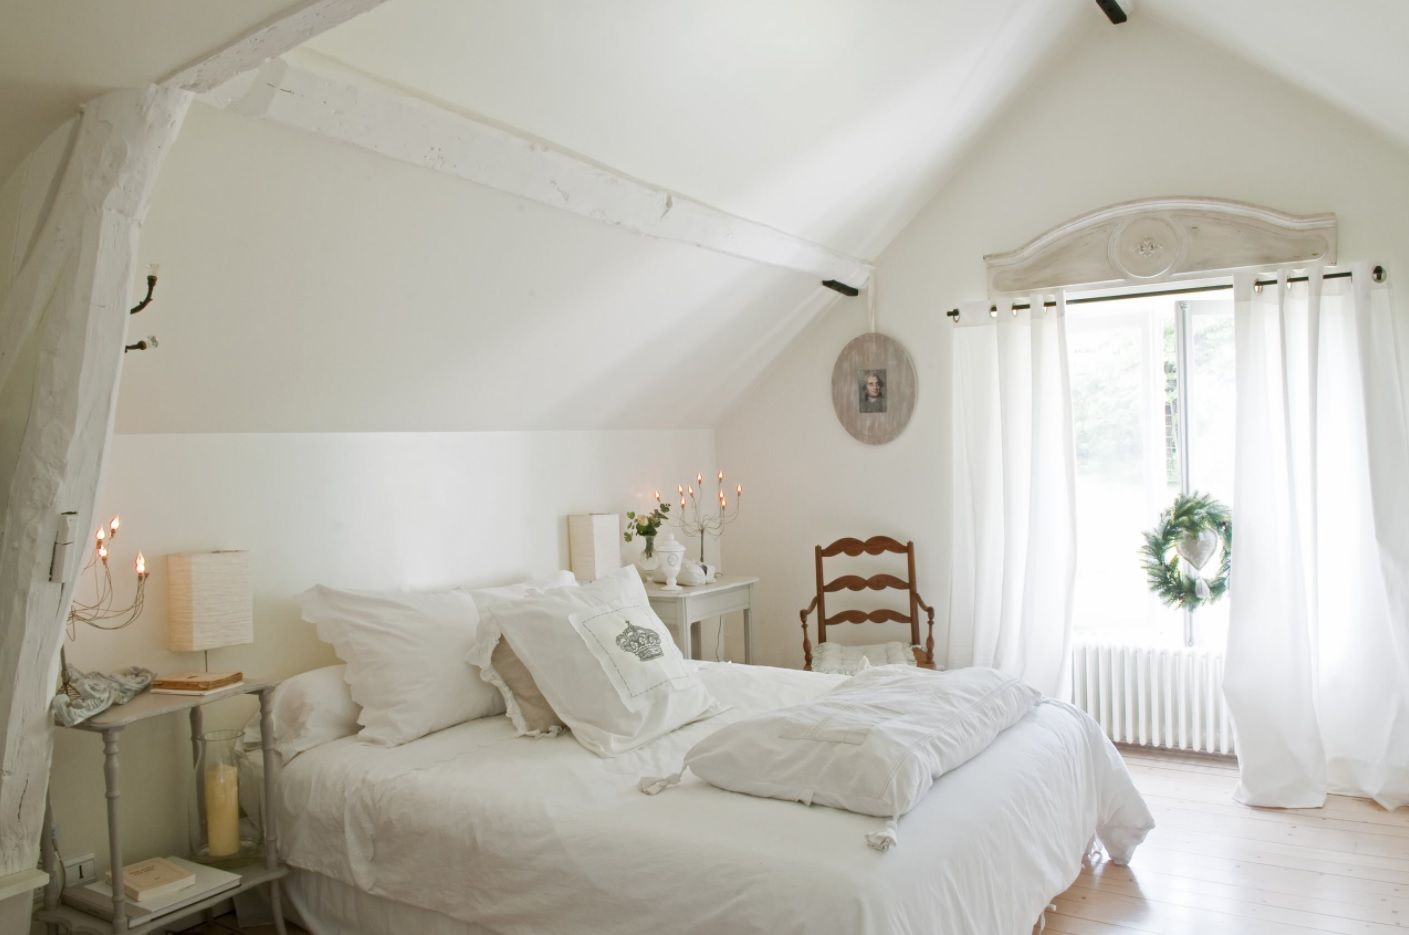 Slant of the ceiling in the light bedroom in creamy color scheme looks like decorative element